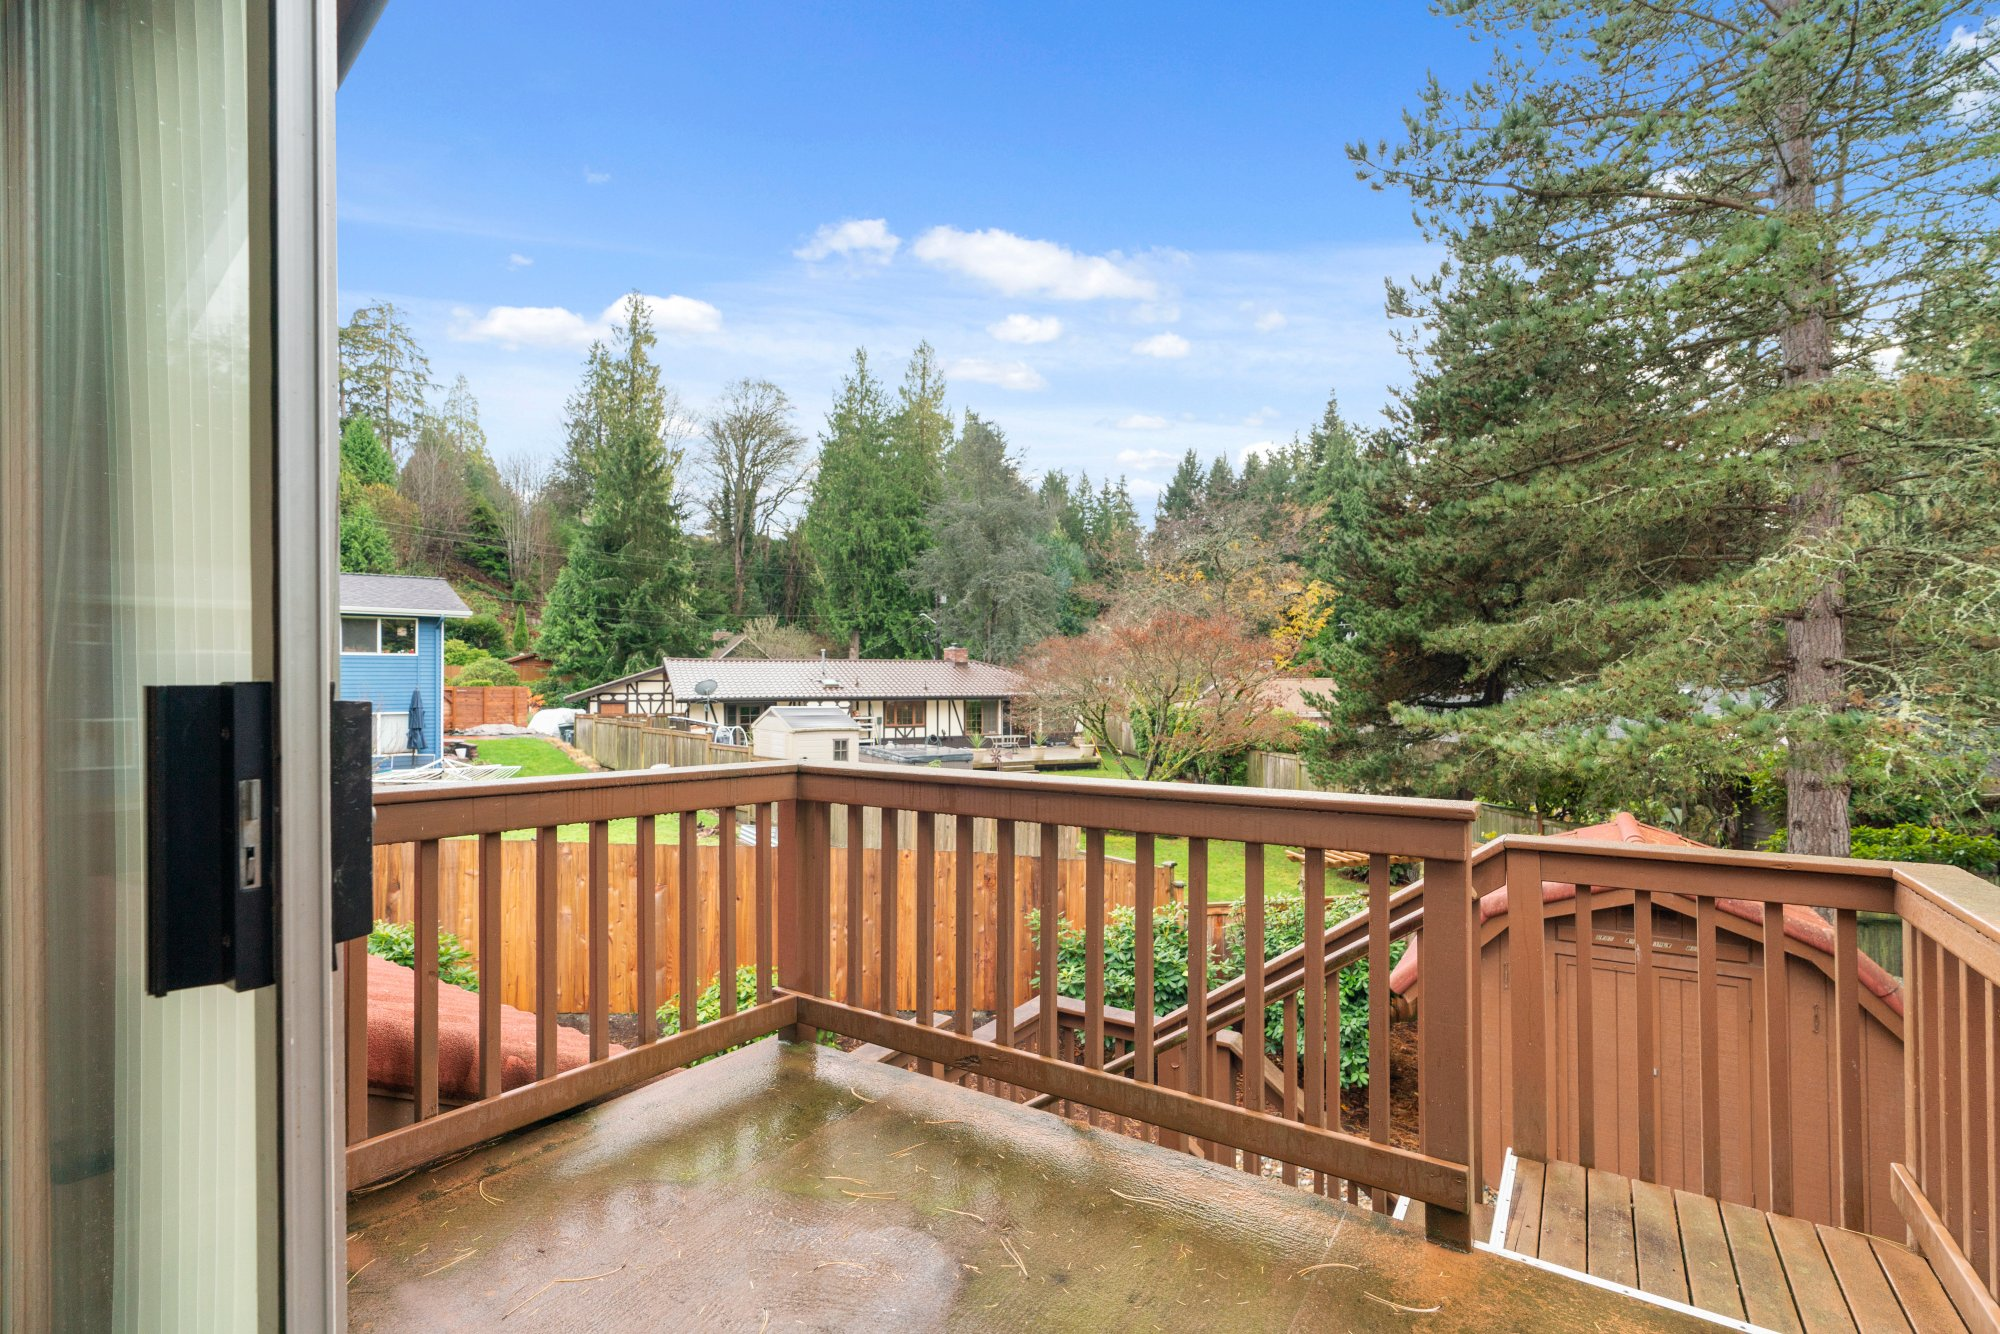 Terry Vehrs_027-22829108thAvenueWest-Edmonds-WA-98020-SMALL